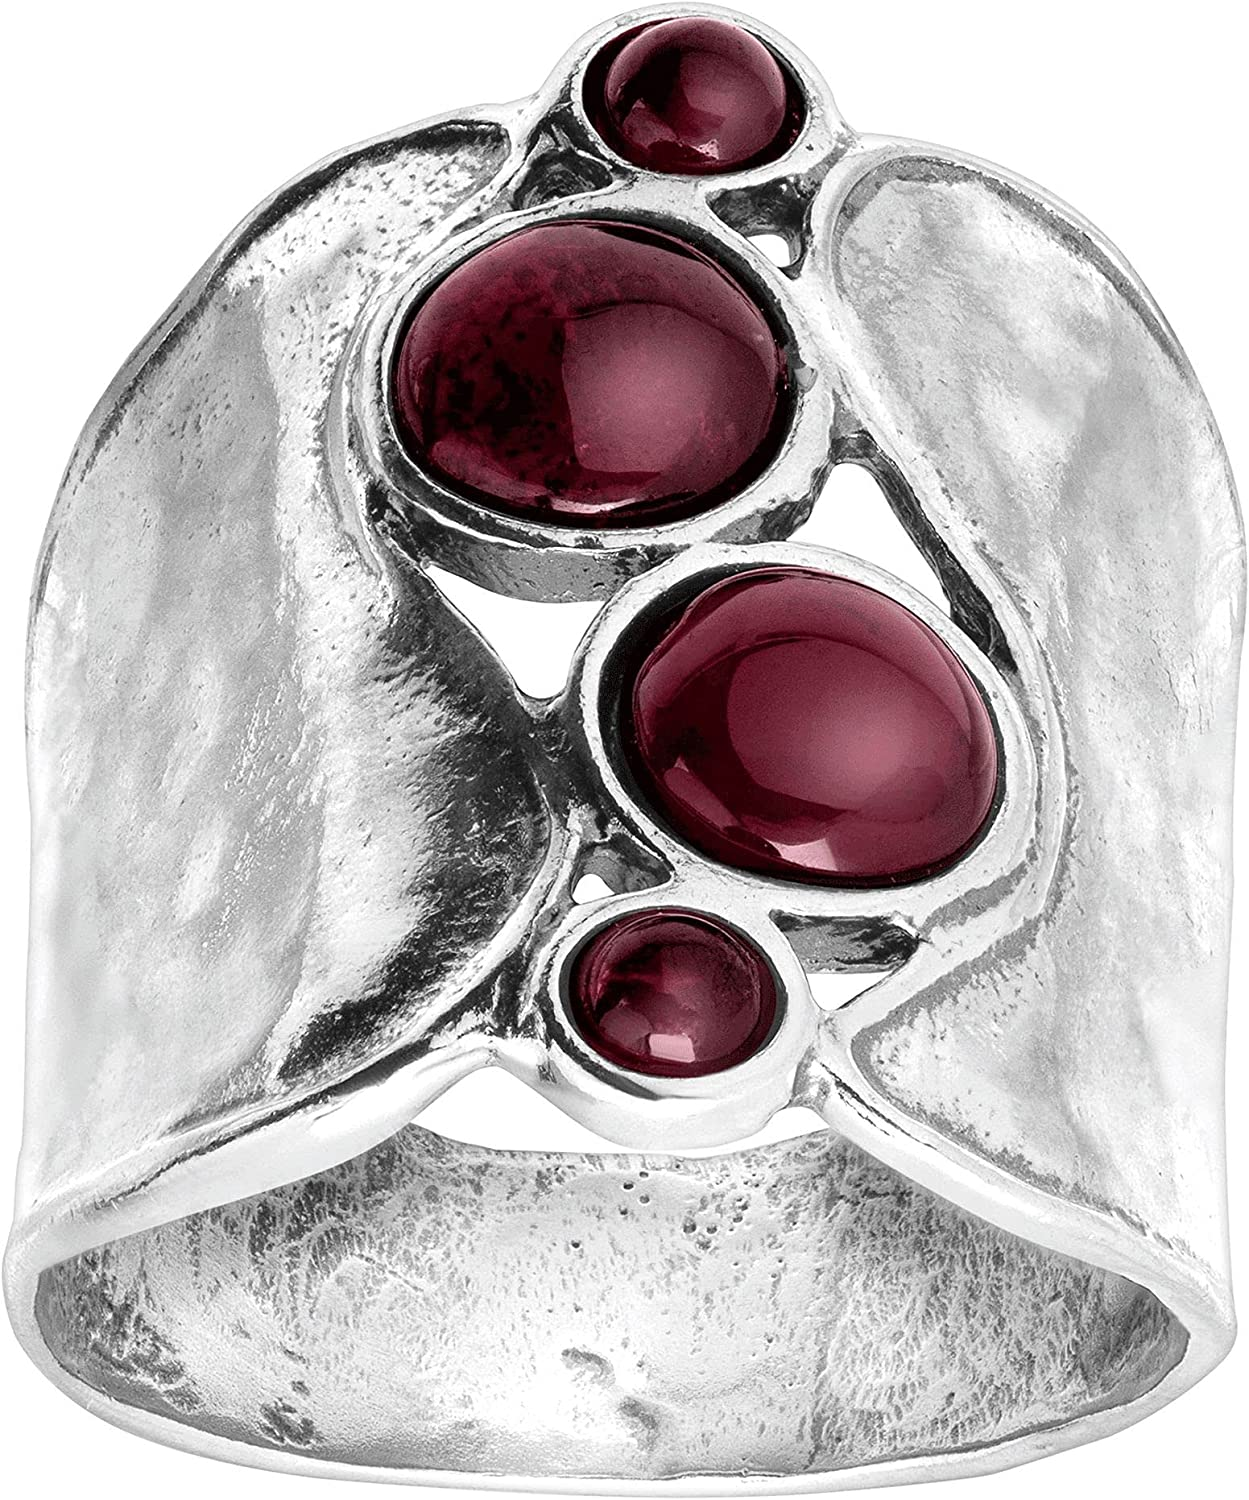 Silpada Popular overseas 'Pebbled Path' Limited time sale Natural Garnet in Sterling Ring Silver